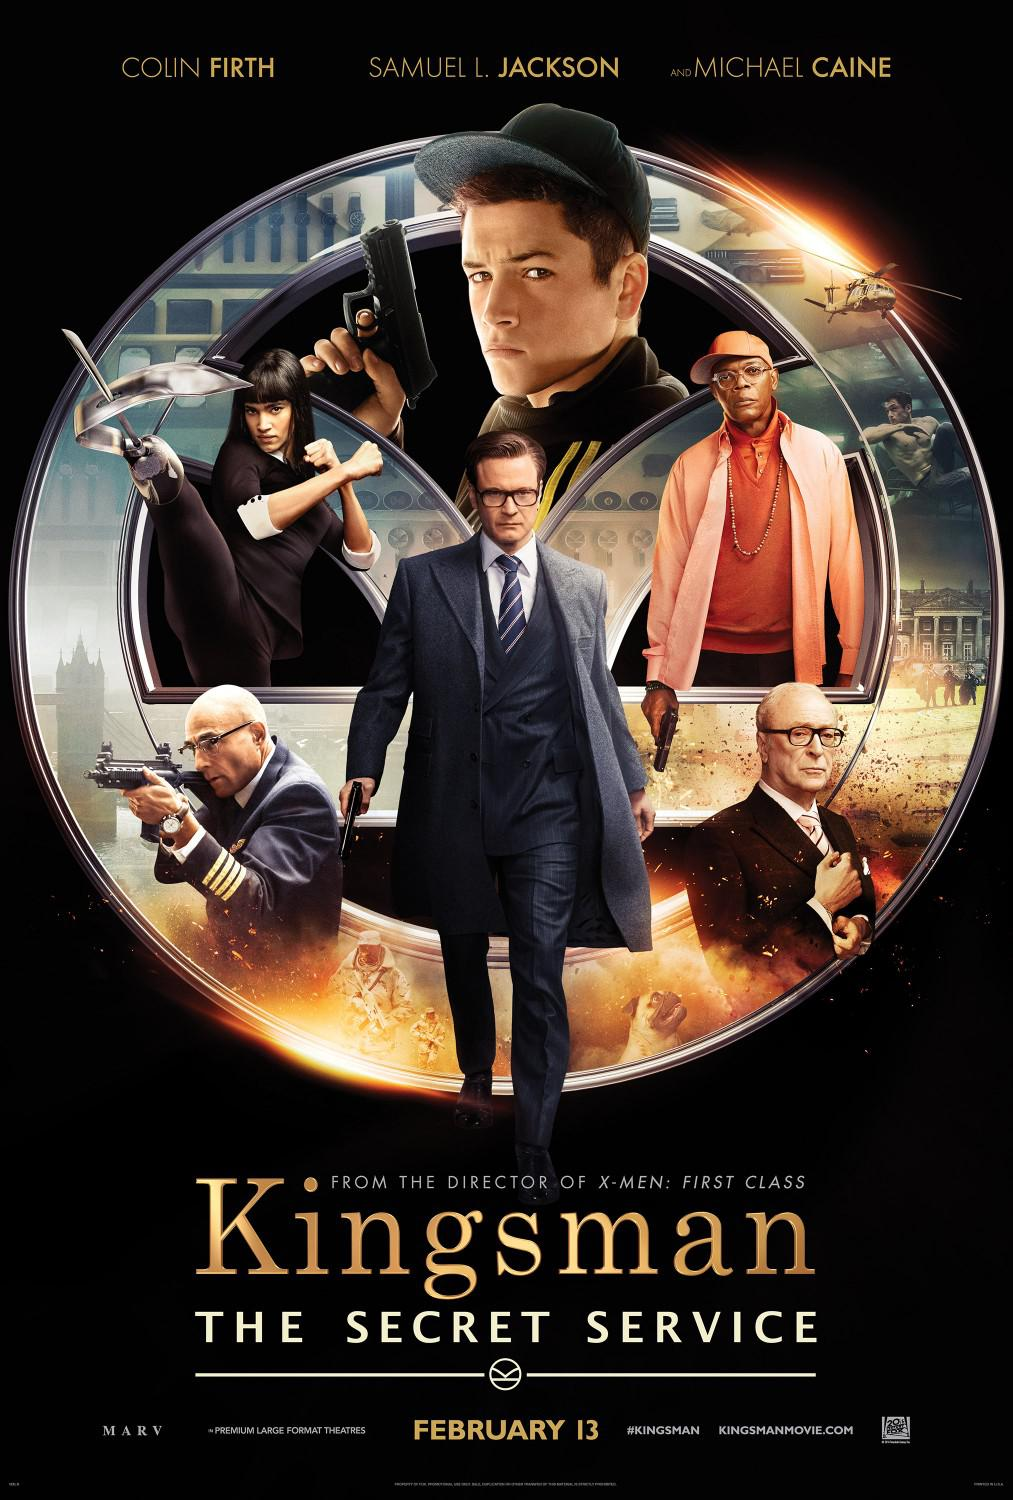 Kingsman 1 - the Secret Service - poster - Colin Firth - Samuel L. Jackson - Michael Caine